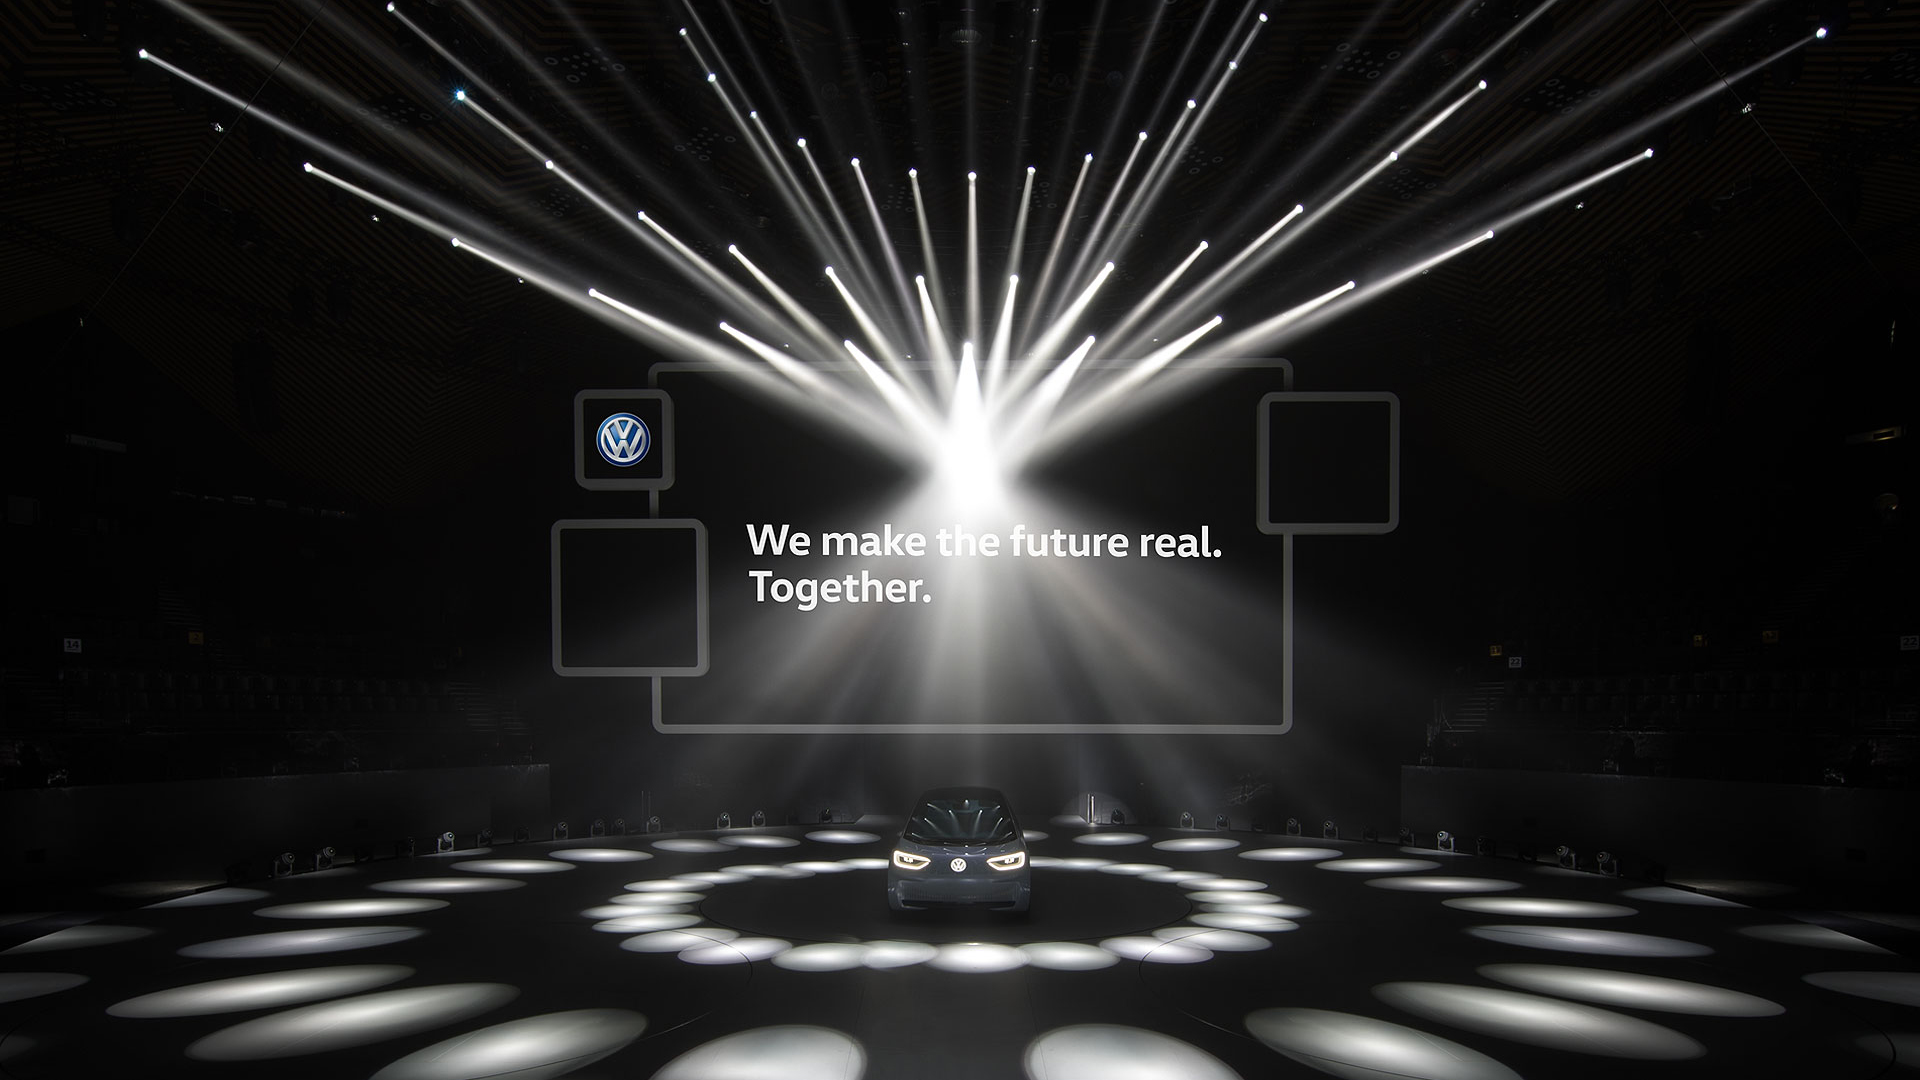 The new concept car from Volkswagen stands alone on stage and is illuminated by many light spots.